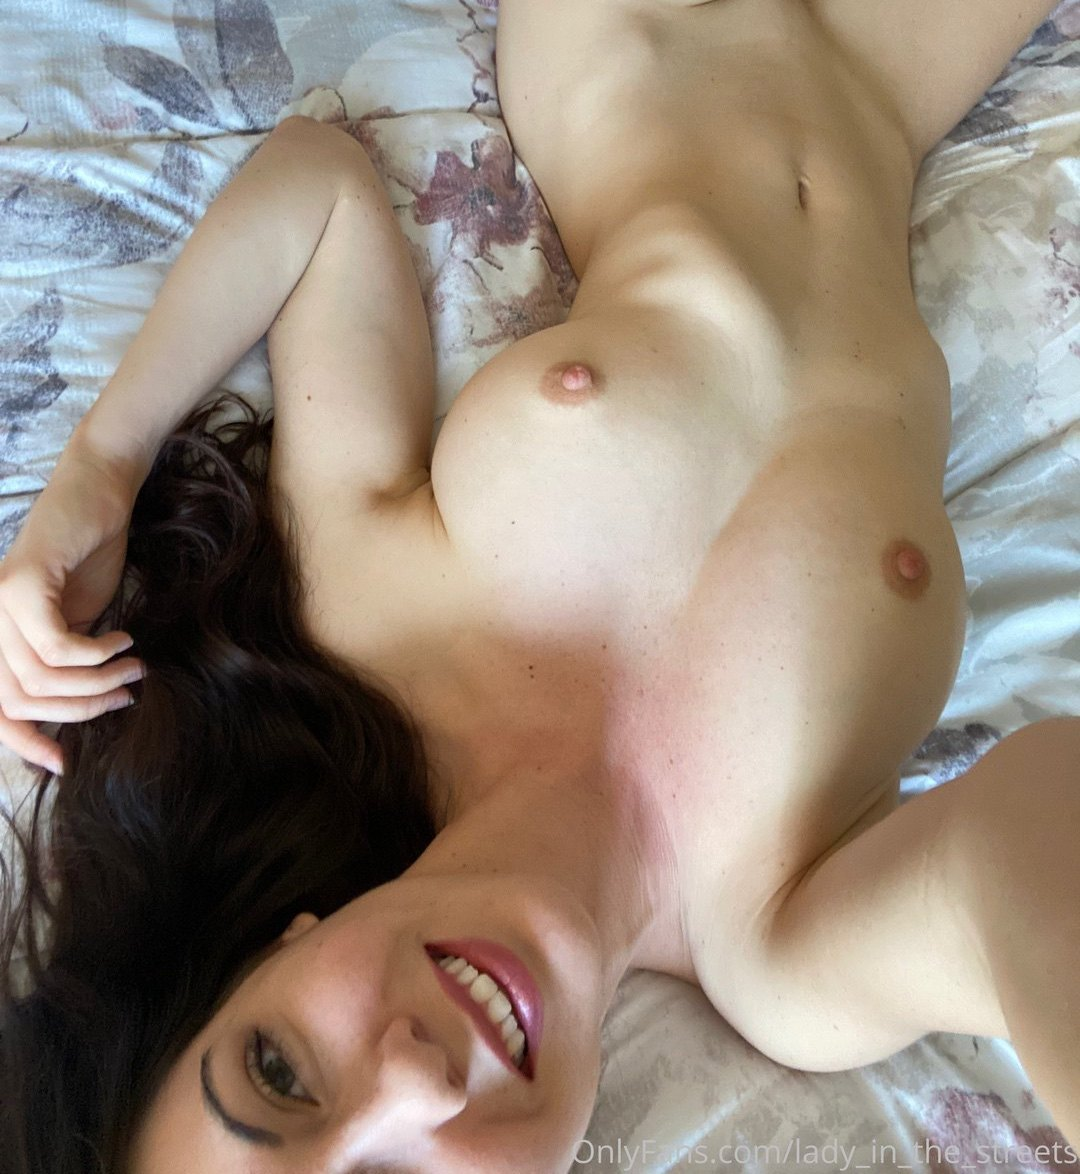 Lady In The Streets Onlyfans Nudes Leaks (0014